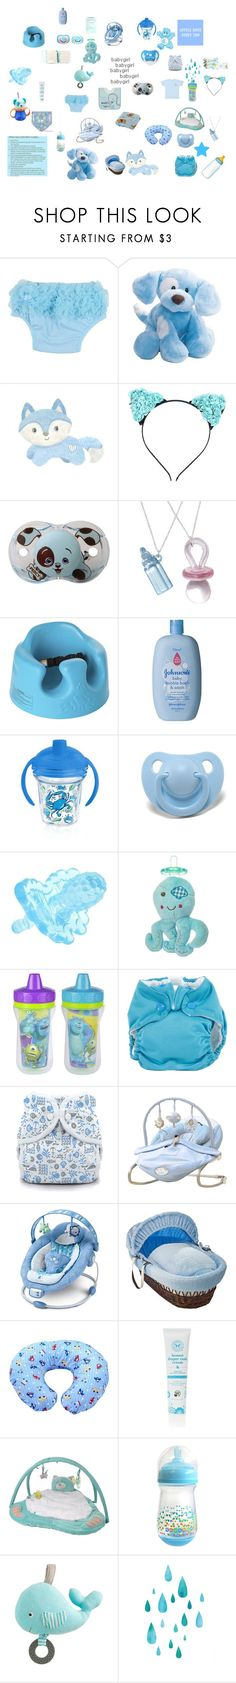 """""""aesthetic princess"""" by unicorn-923 ❤ liked on Polyvore featuring Gund, Johnson's Baby, Tervis, Disney, Mary Meyer, The First Years, Boppy, The Honest Company and Moulin Roty"""